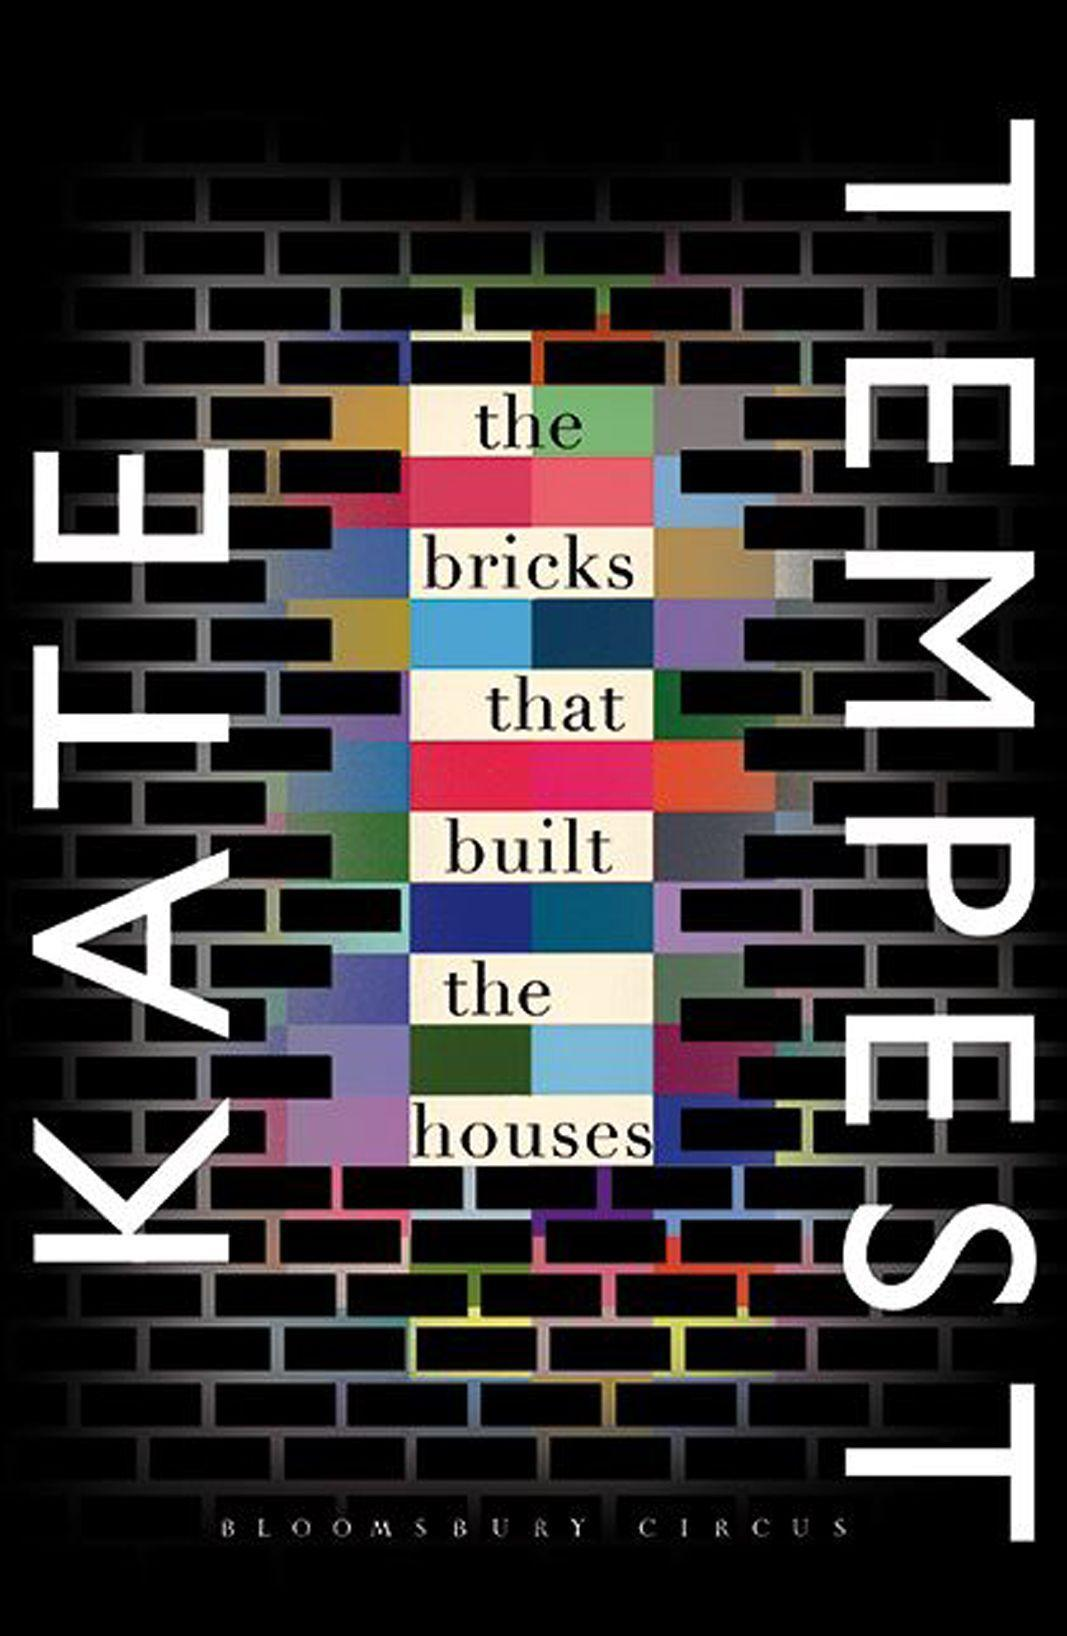 <p><strong><em>The Bricks That Built The Houses</em></strong></p> <p>By Kate Tempest</p> <p>The debut novel by groundbreaking, award-winning poet and rapper Kate Tempest is a multi-generational story that will plunge you straight into southeast London: drugs, desire, violence and dead-end jobs galore. Three friends set about leaving the city in an old car with a suitcase of money to escape their demons. <em>The Bricks That Built The Houses</em> is a vivid meditation on contemporary city life through a powerful moral lens.</p>